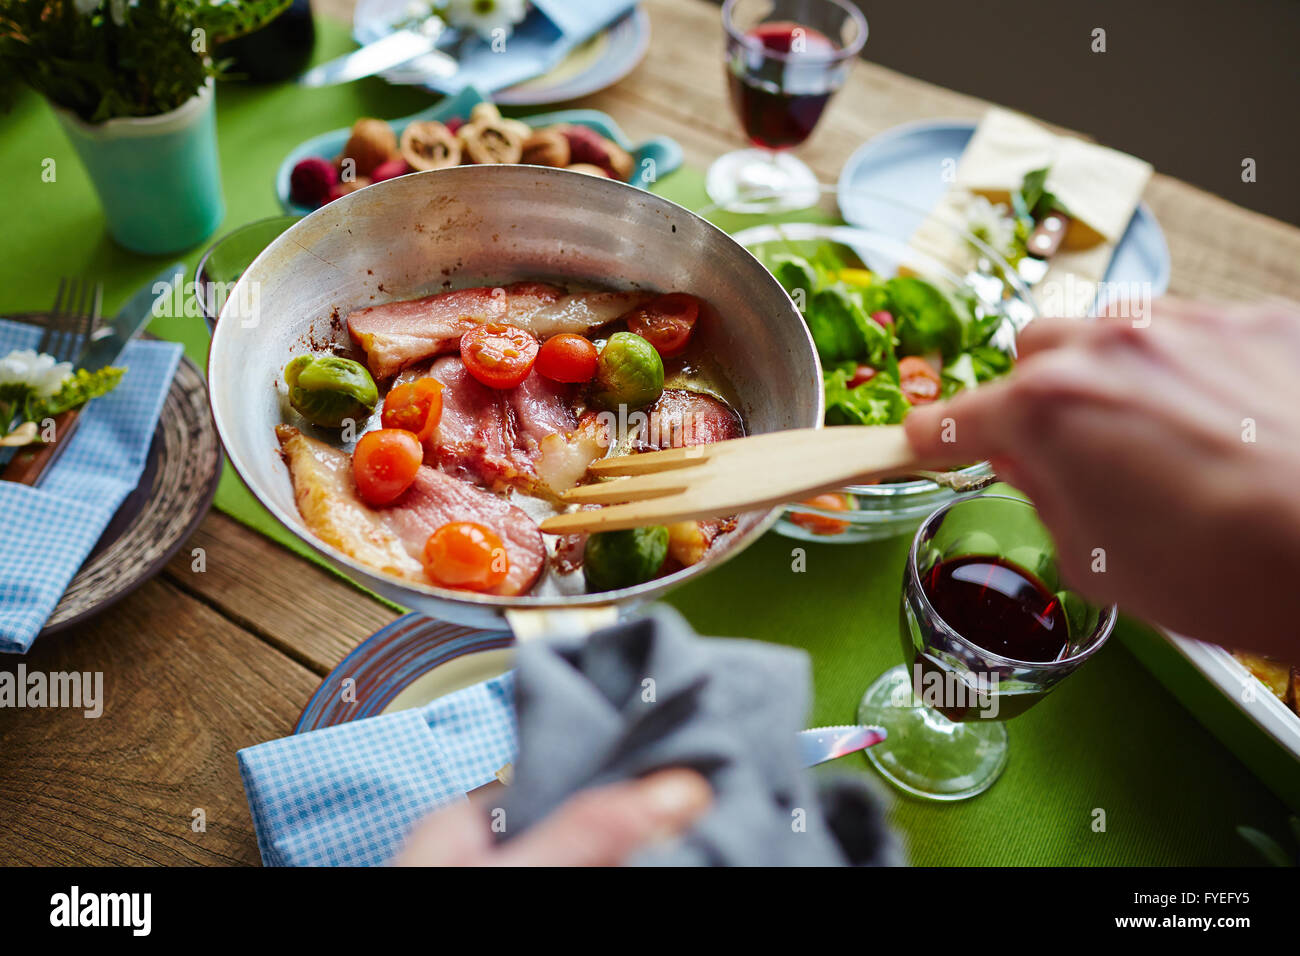 Cooking food - Stock Image